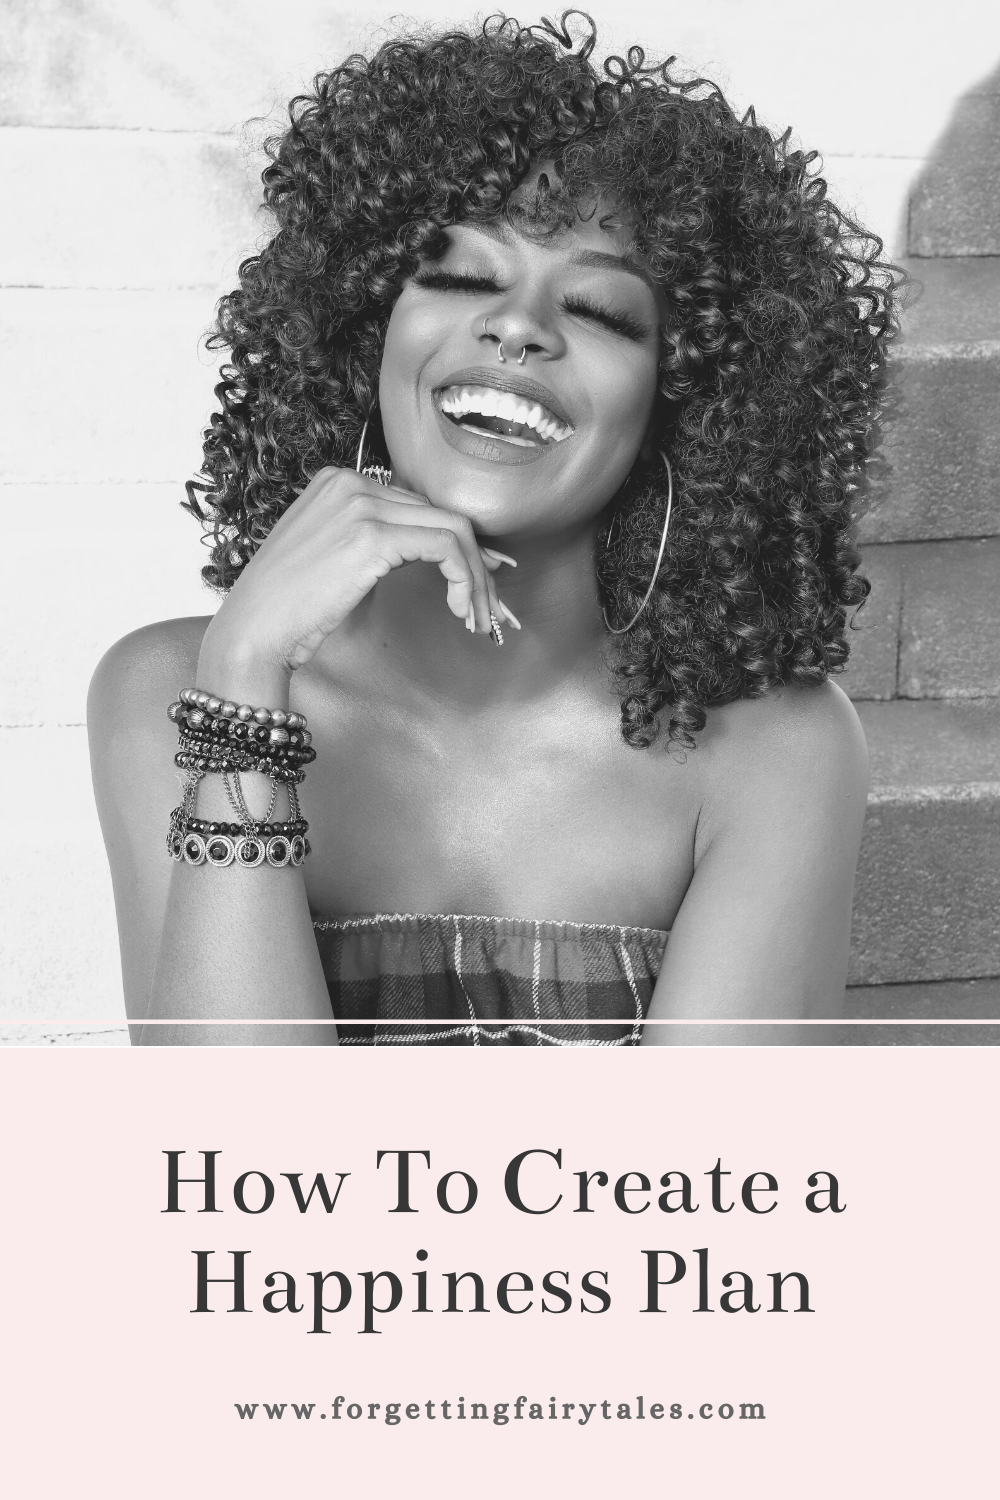 How To Create a Happiness Plan